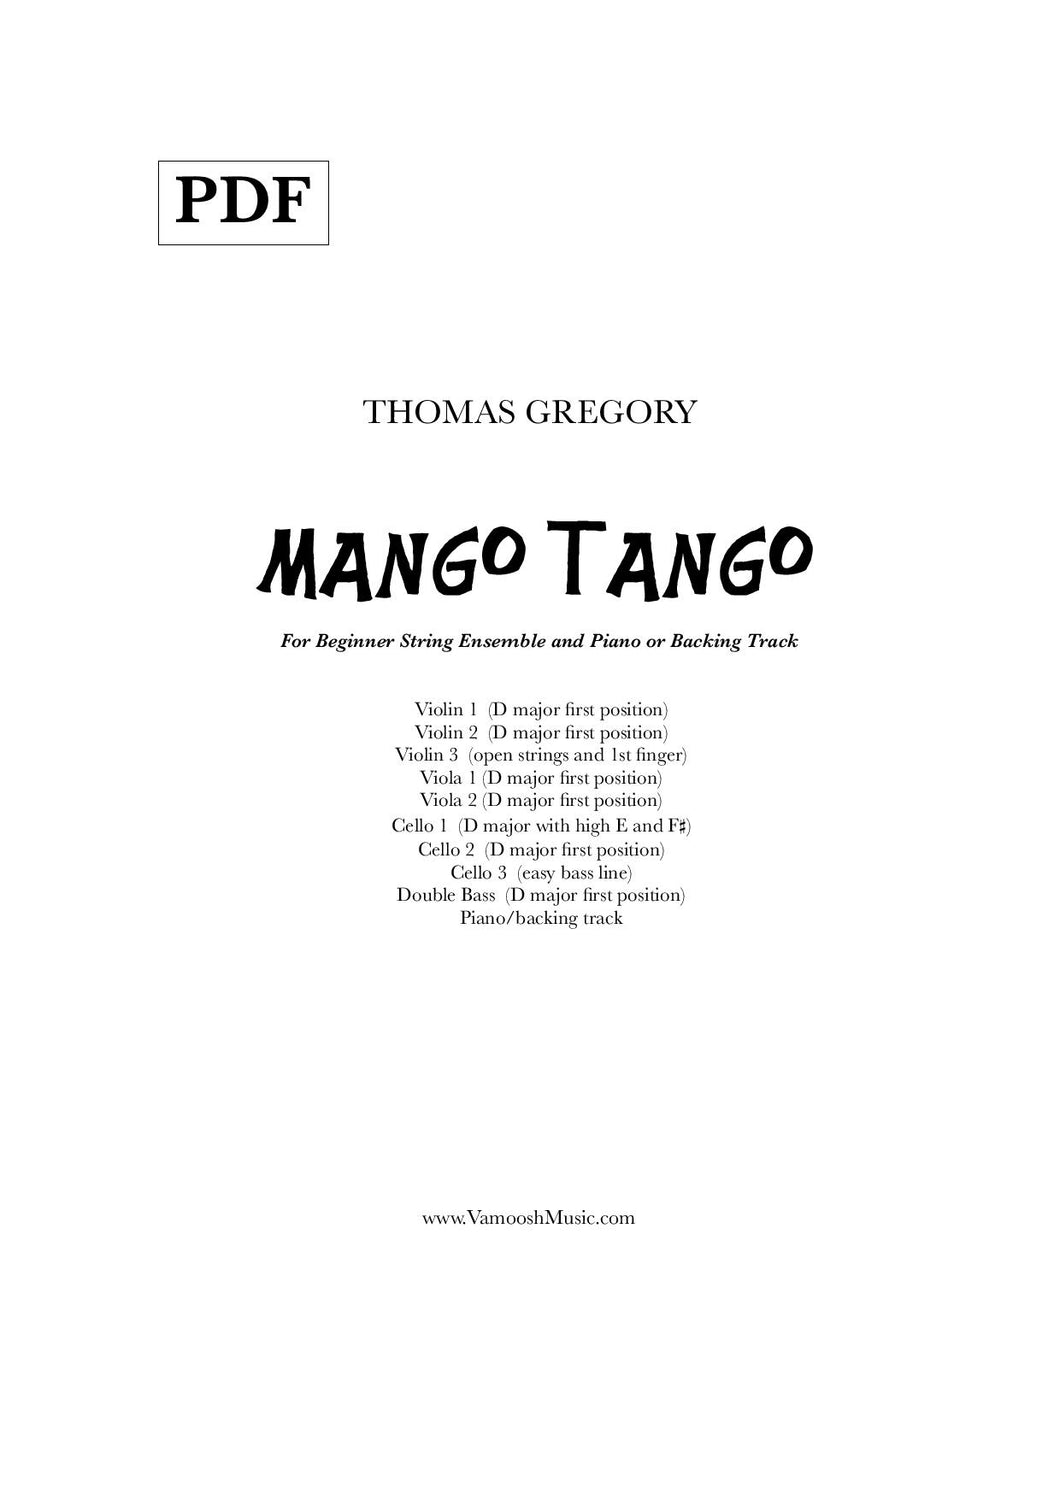 Mango Tango Backing Track (MP3)